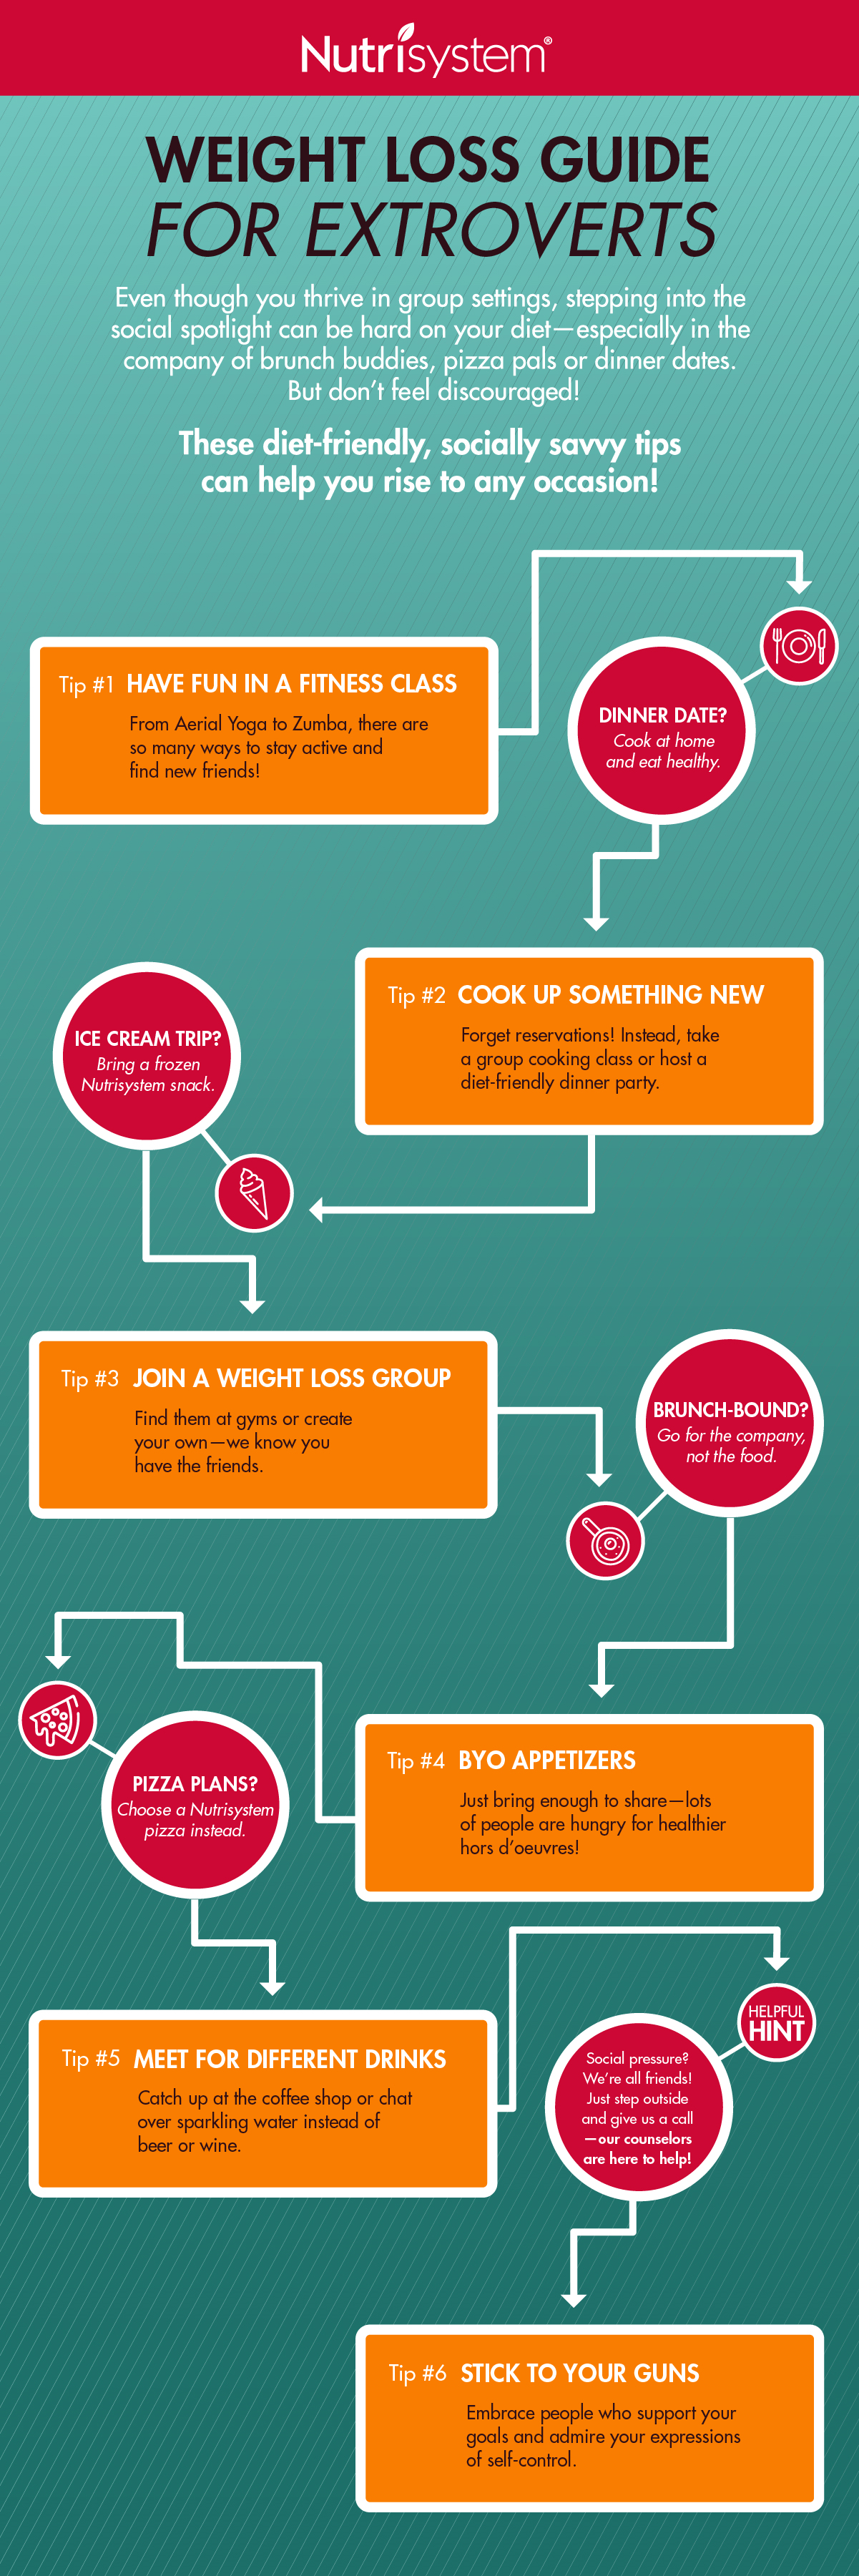 Weight Loss Guide for Extroverts